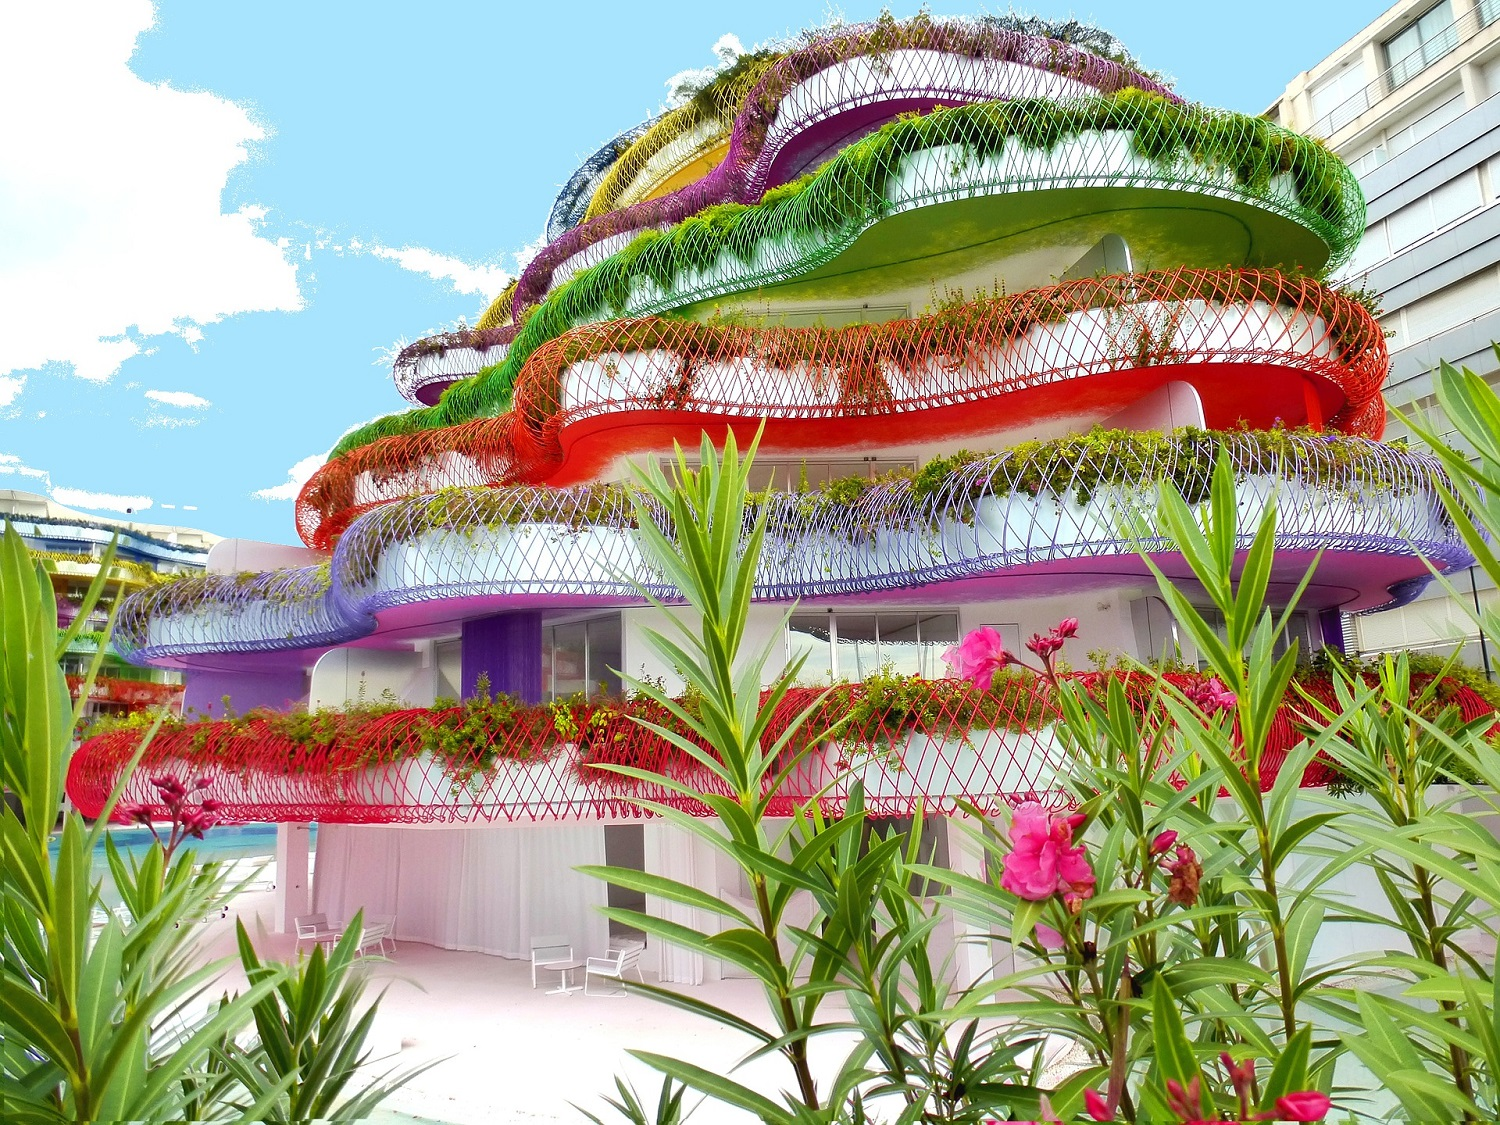 Coulourful Building on Ibiza - Source: pixabay.com